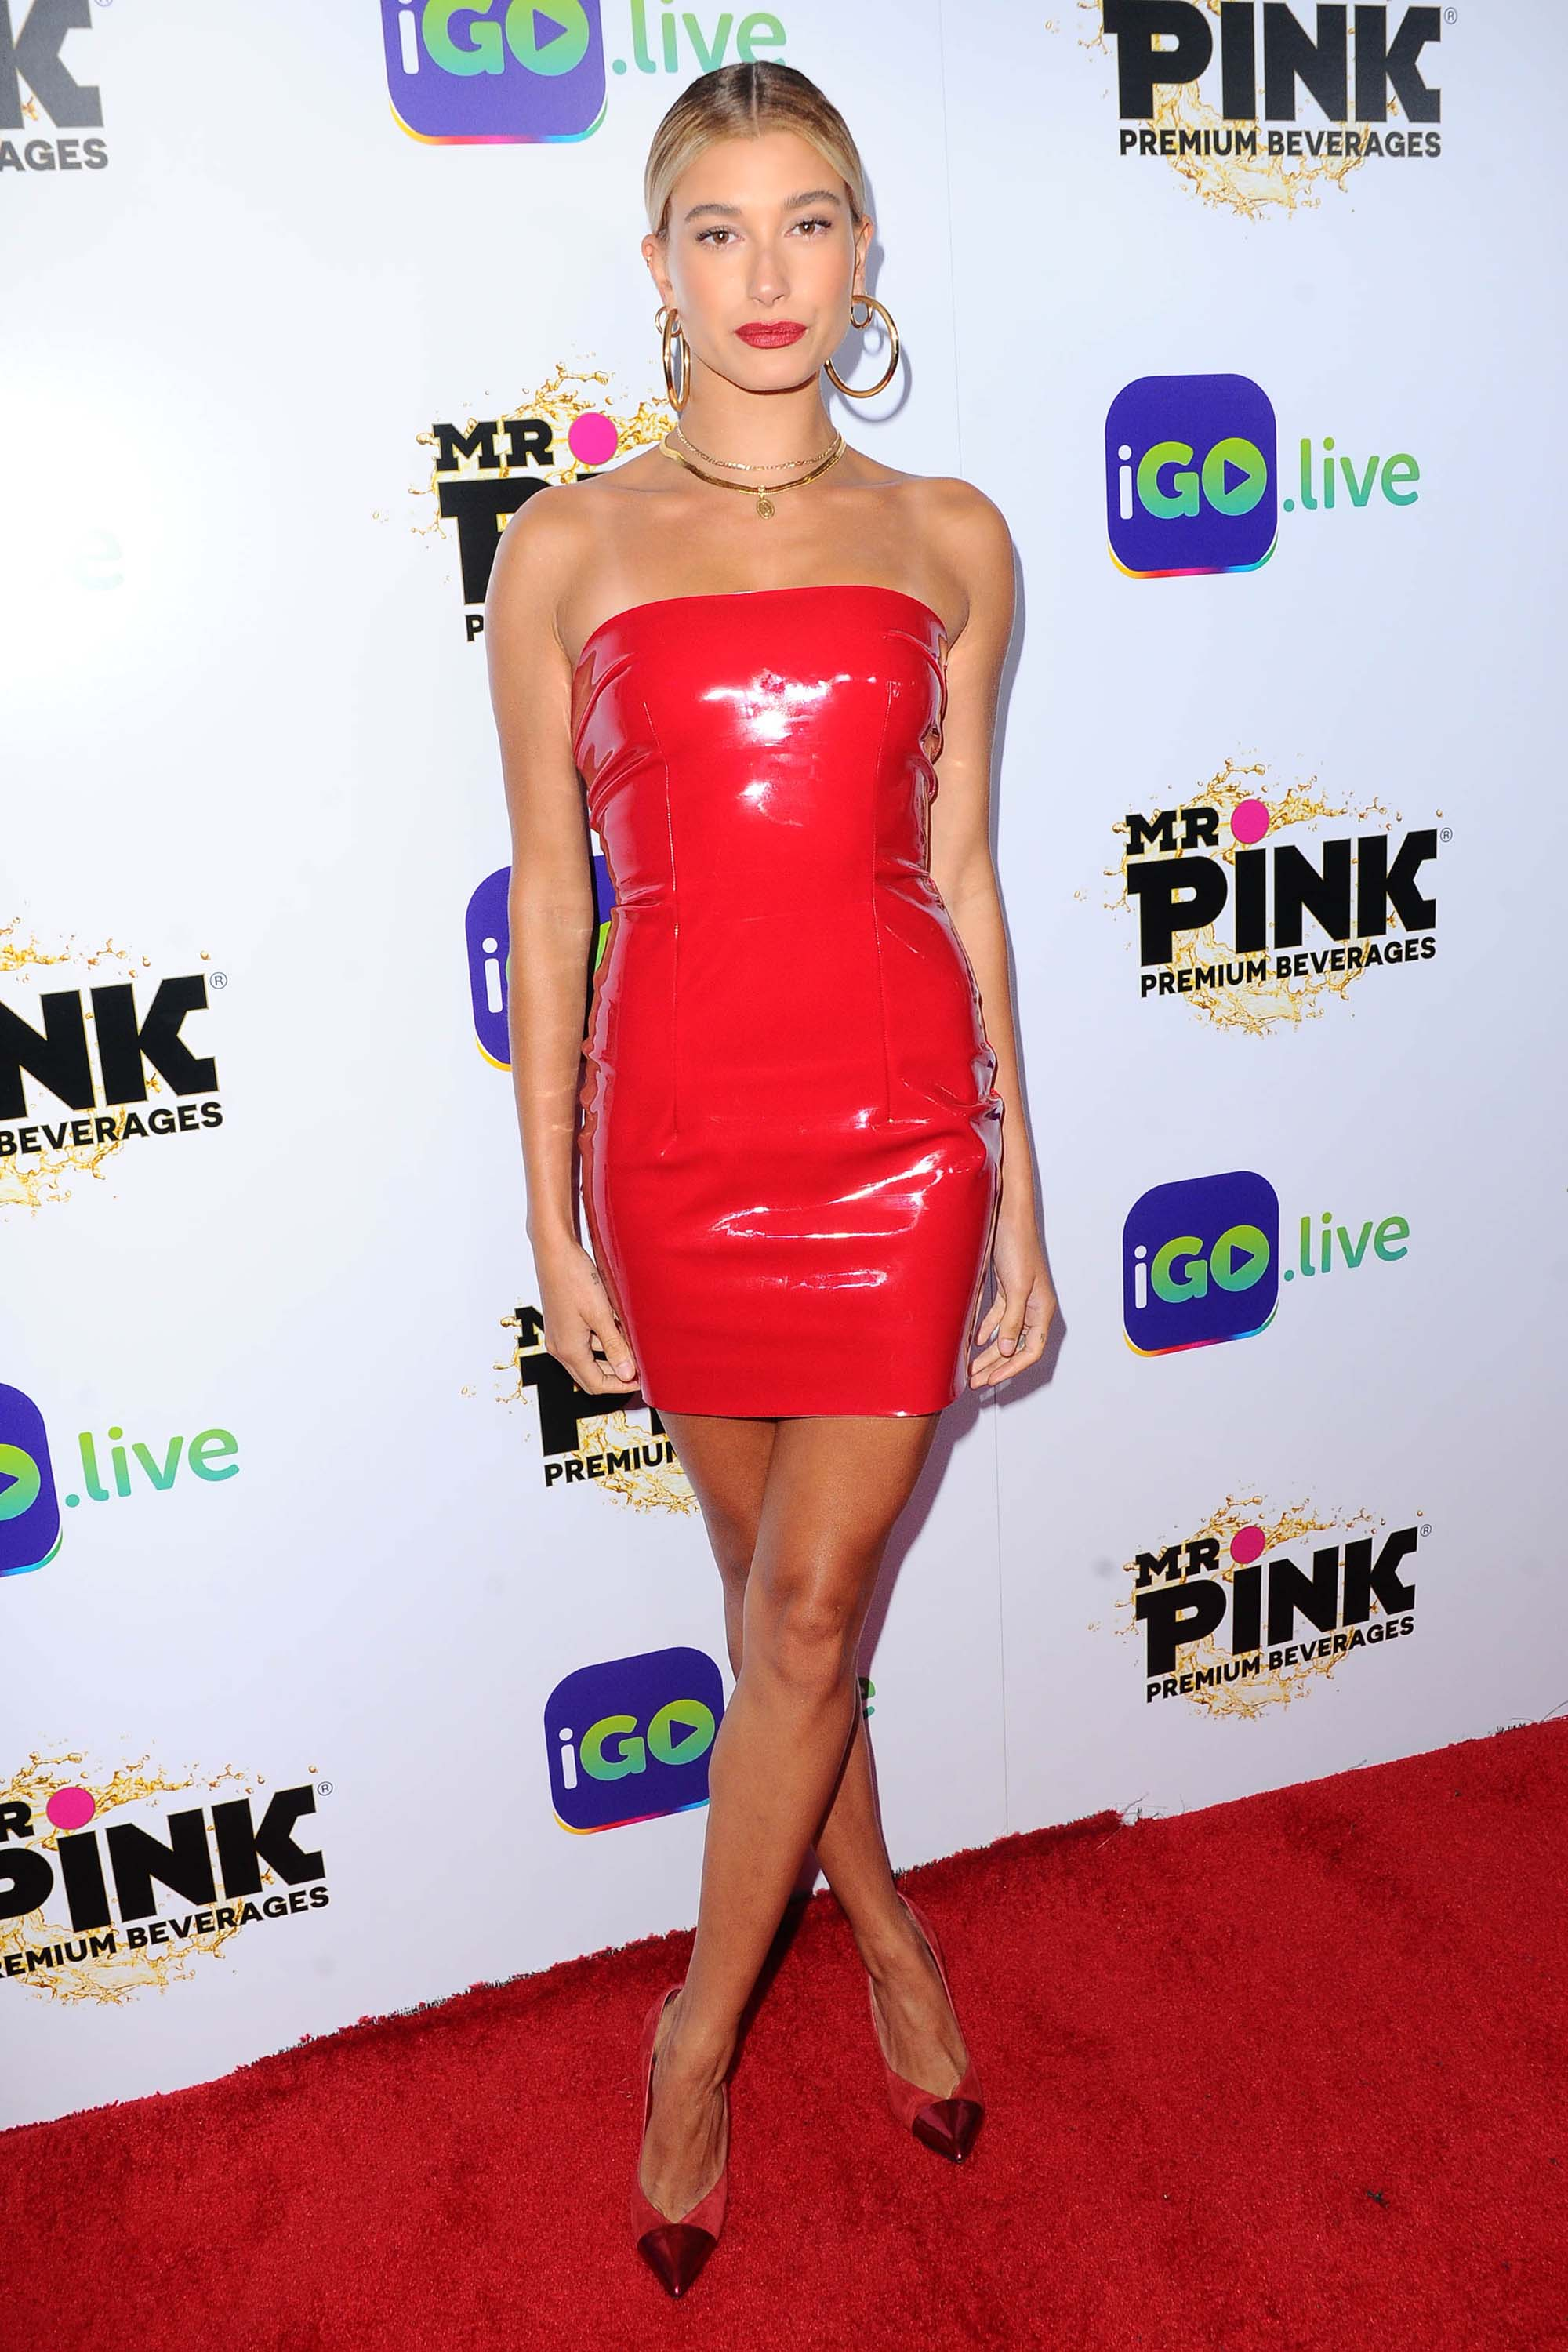 Hailey Baldwin attends Go live Launch Event